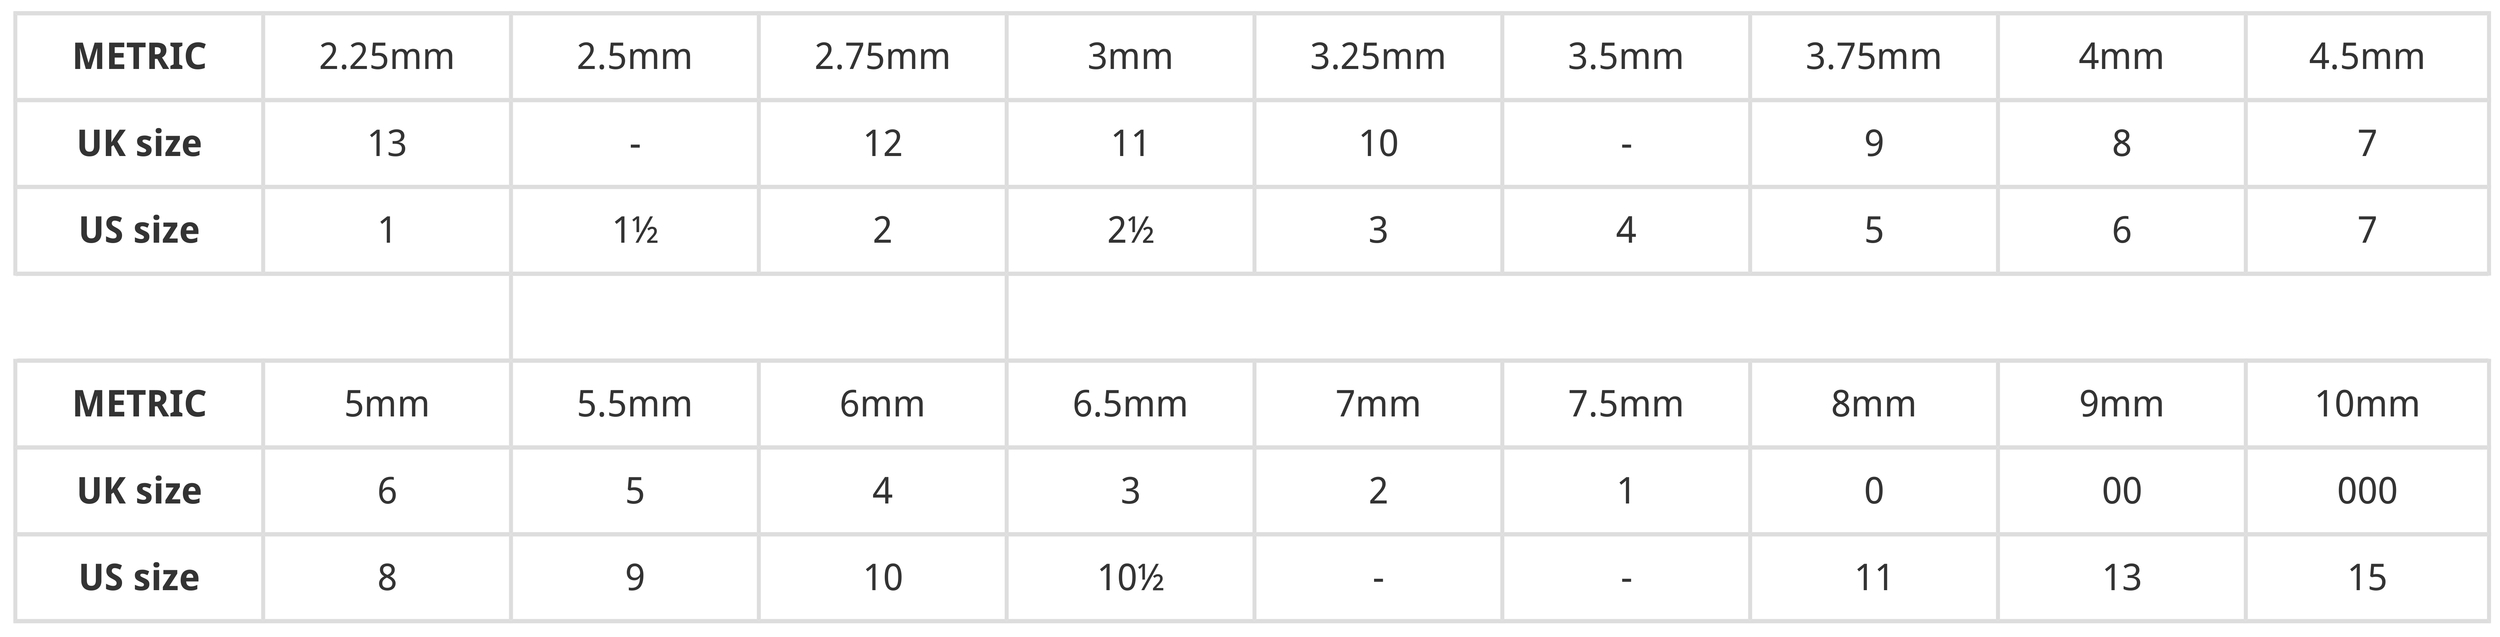 Woolly Wormhead knitting needle size guide comparing metric, US and UK sizes